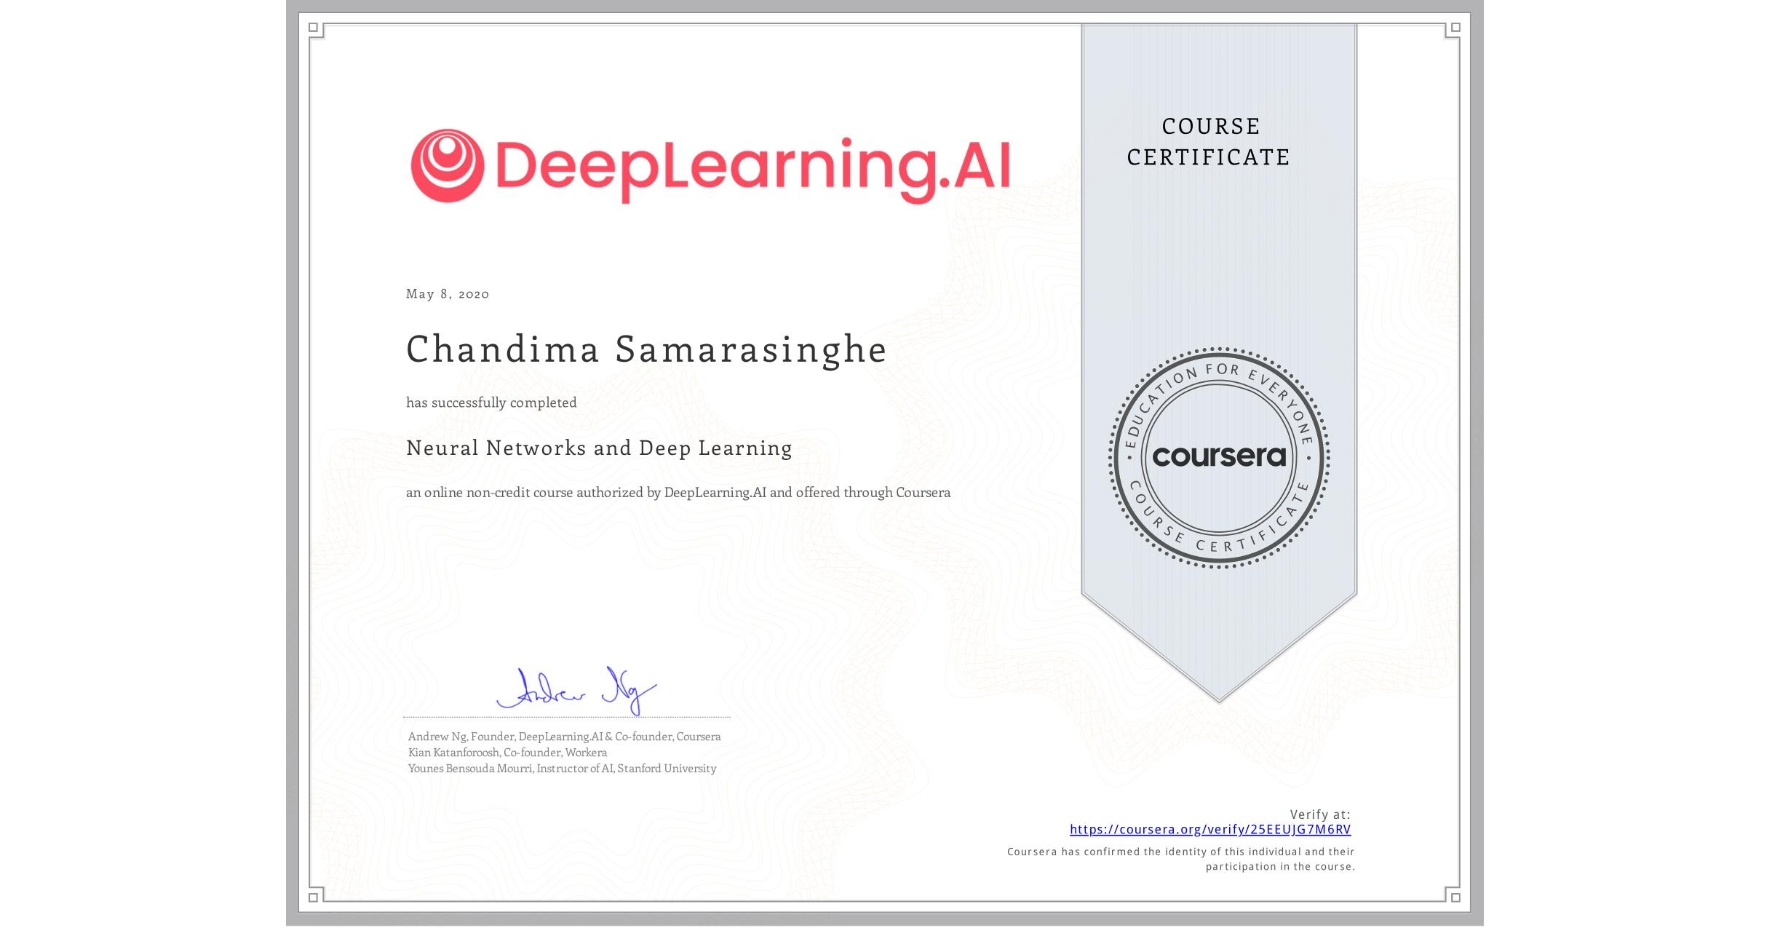 View certificate for Chandima Samarasinghe, Neural Networks and Deep Learning, an online non-credit course authorized by DeepLearning.AI and offered through Coursera